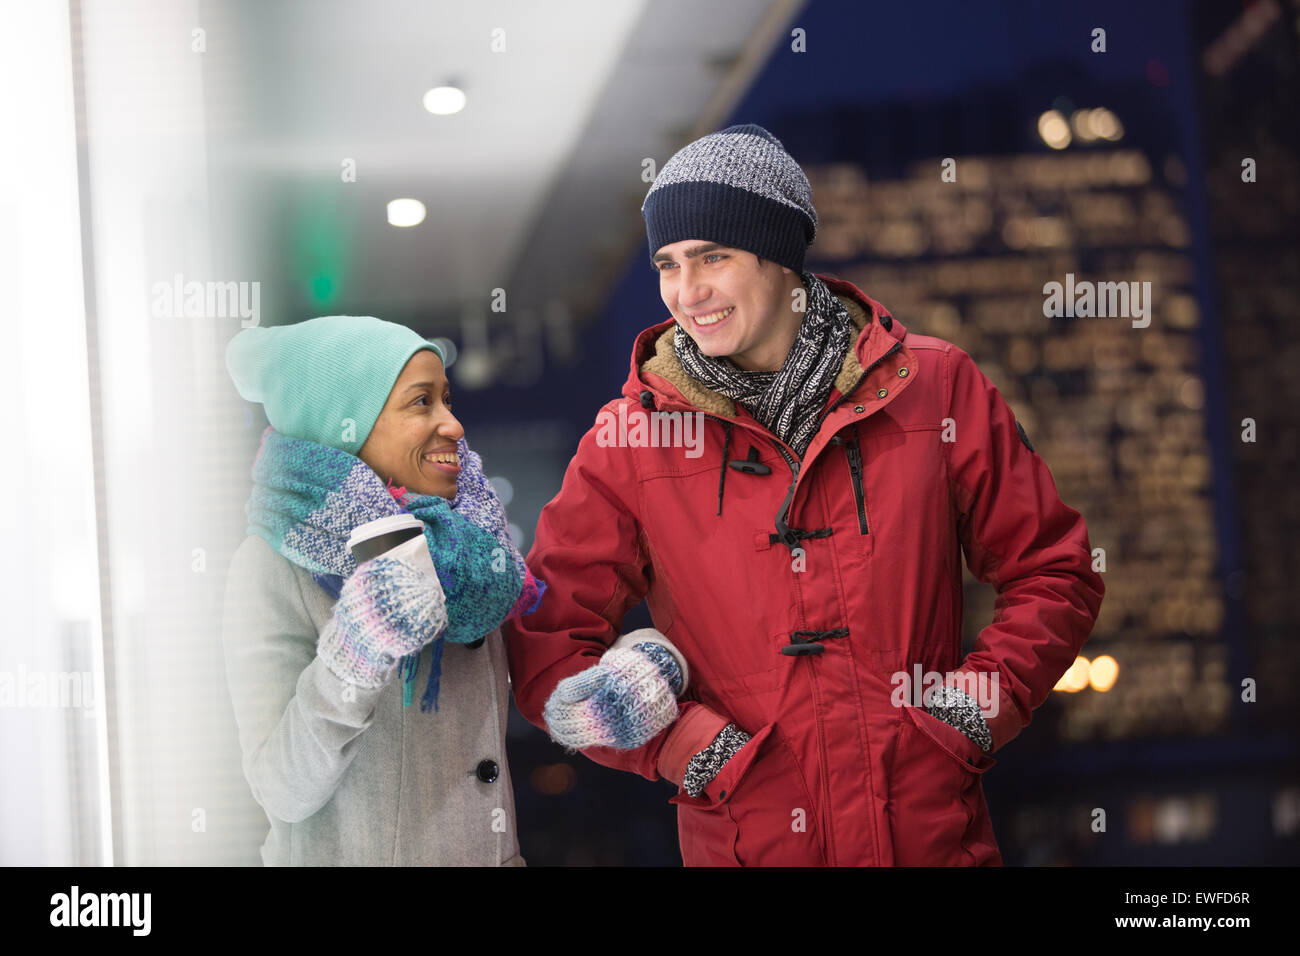 Multiethnic couple conversing at dusk during winter - Stock Image